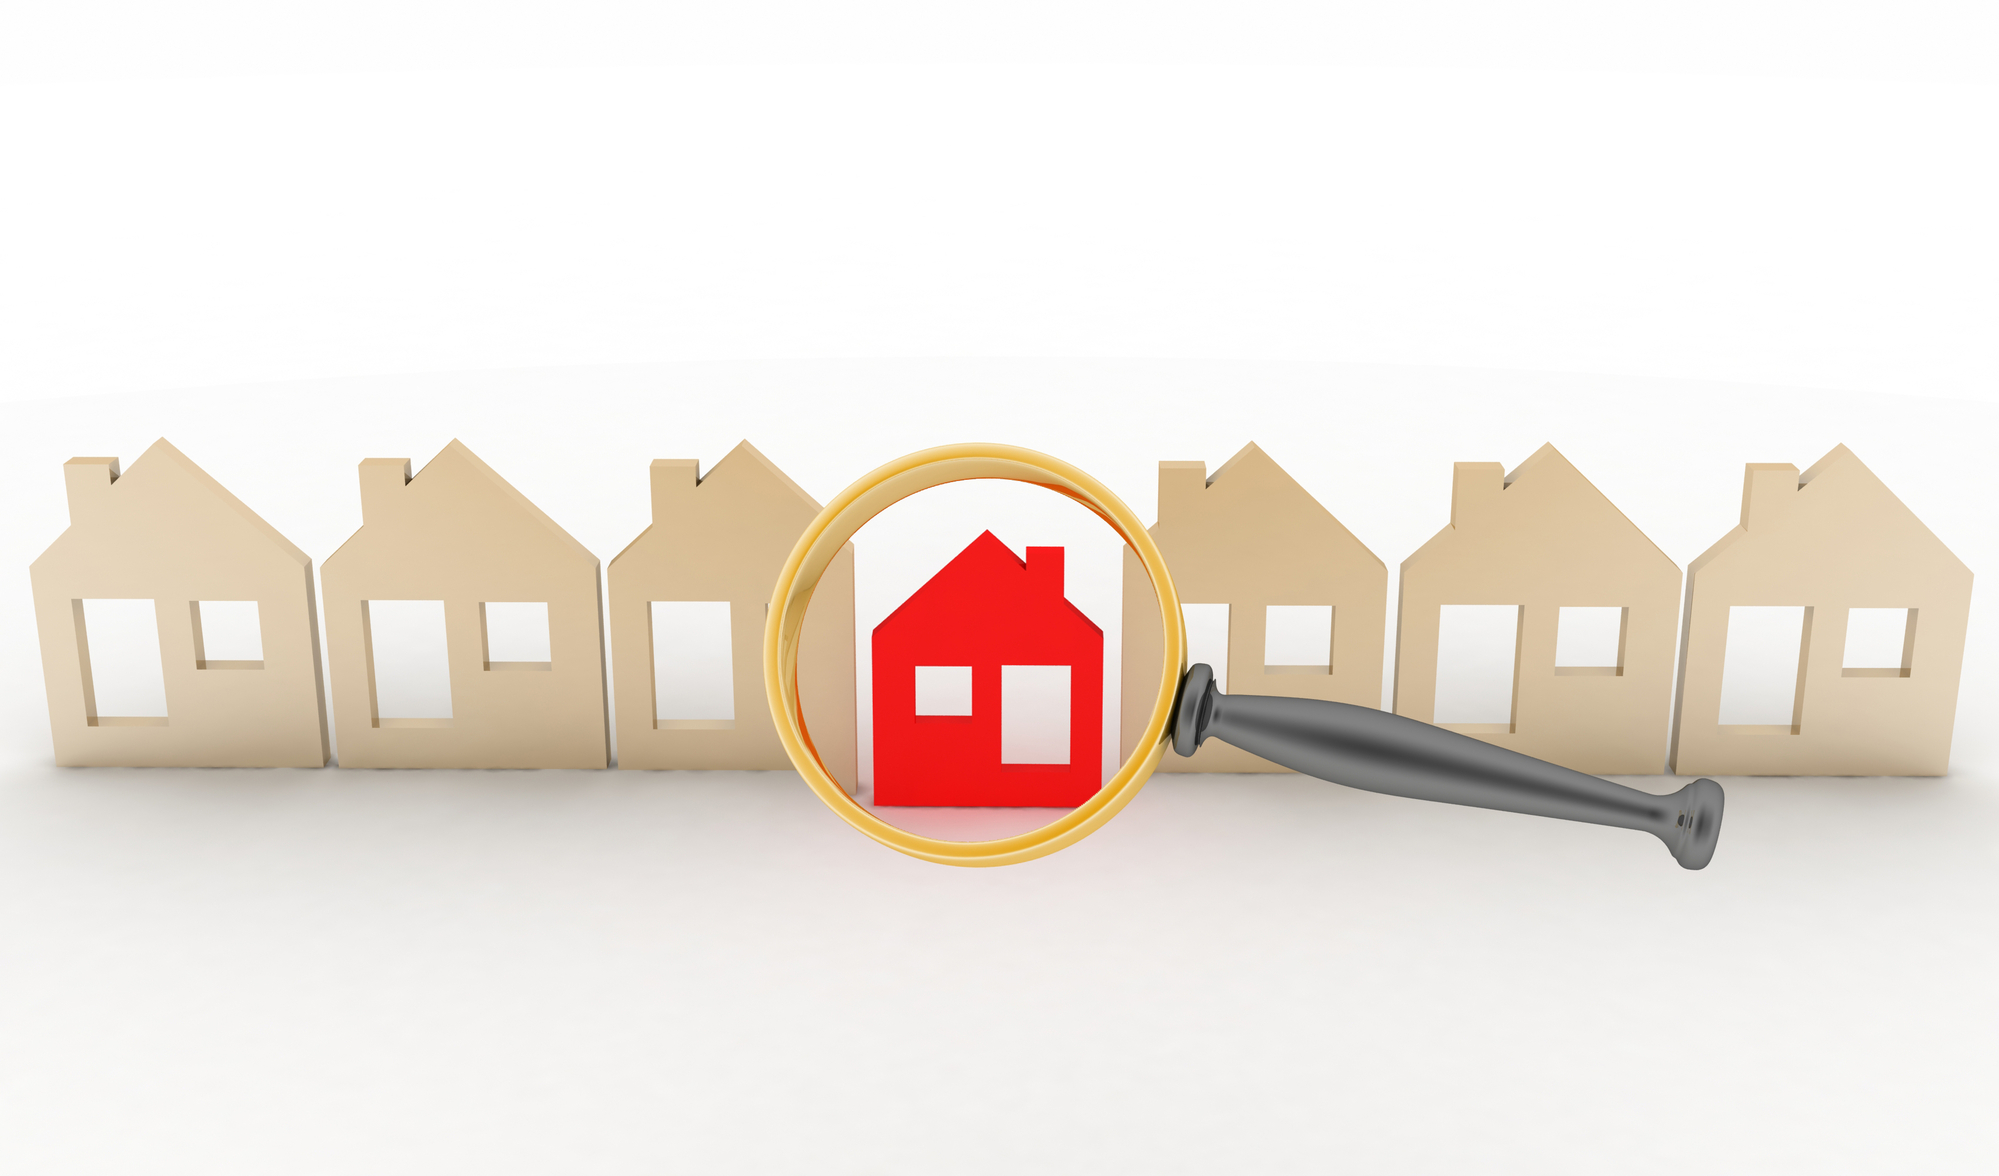 Magnifying glass selects or inspects a home in a row of houses